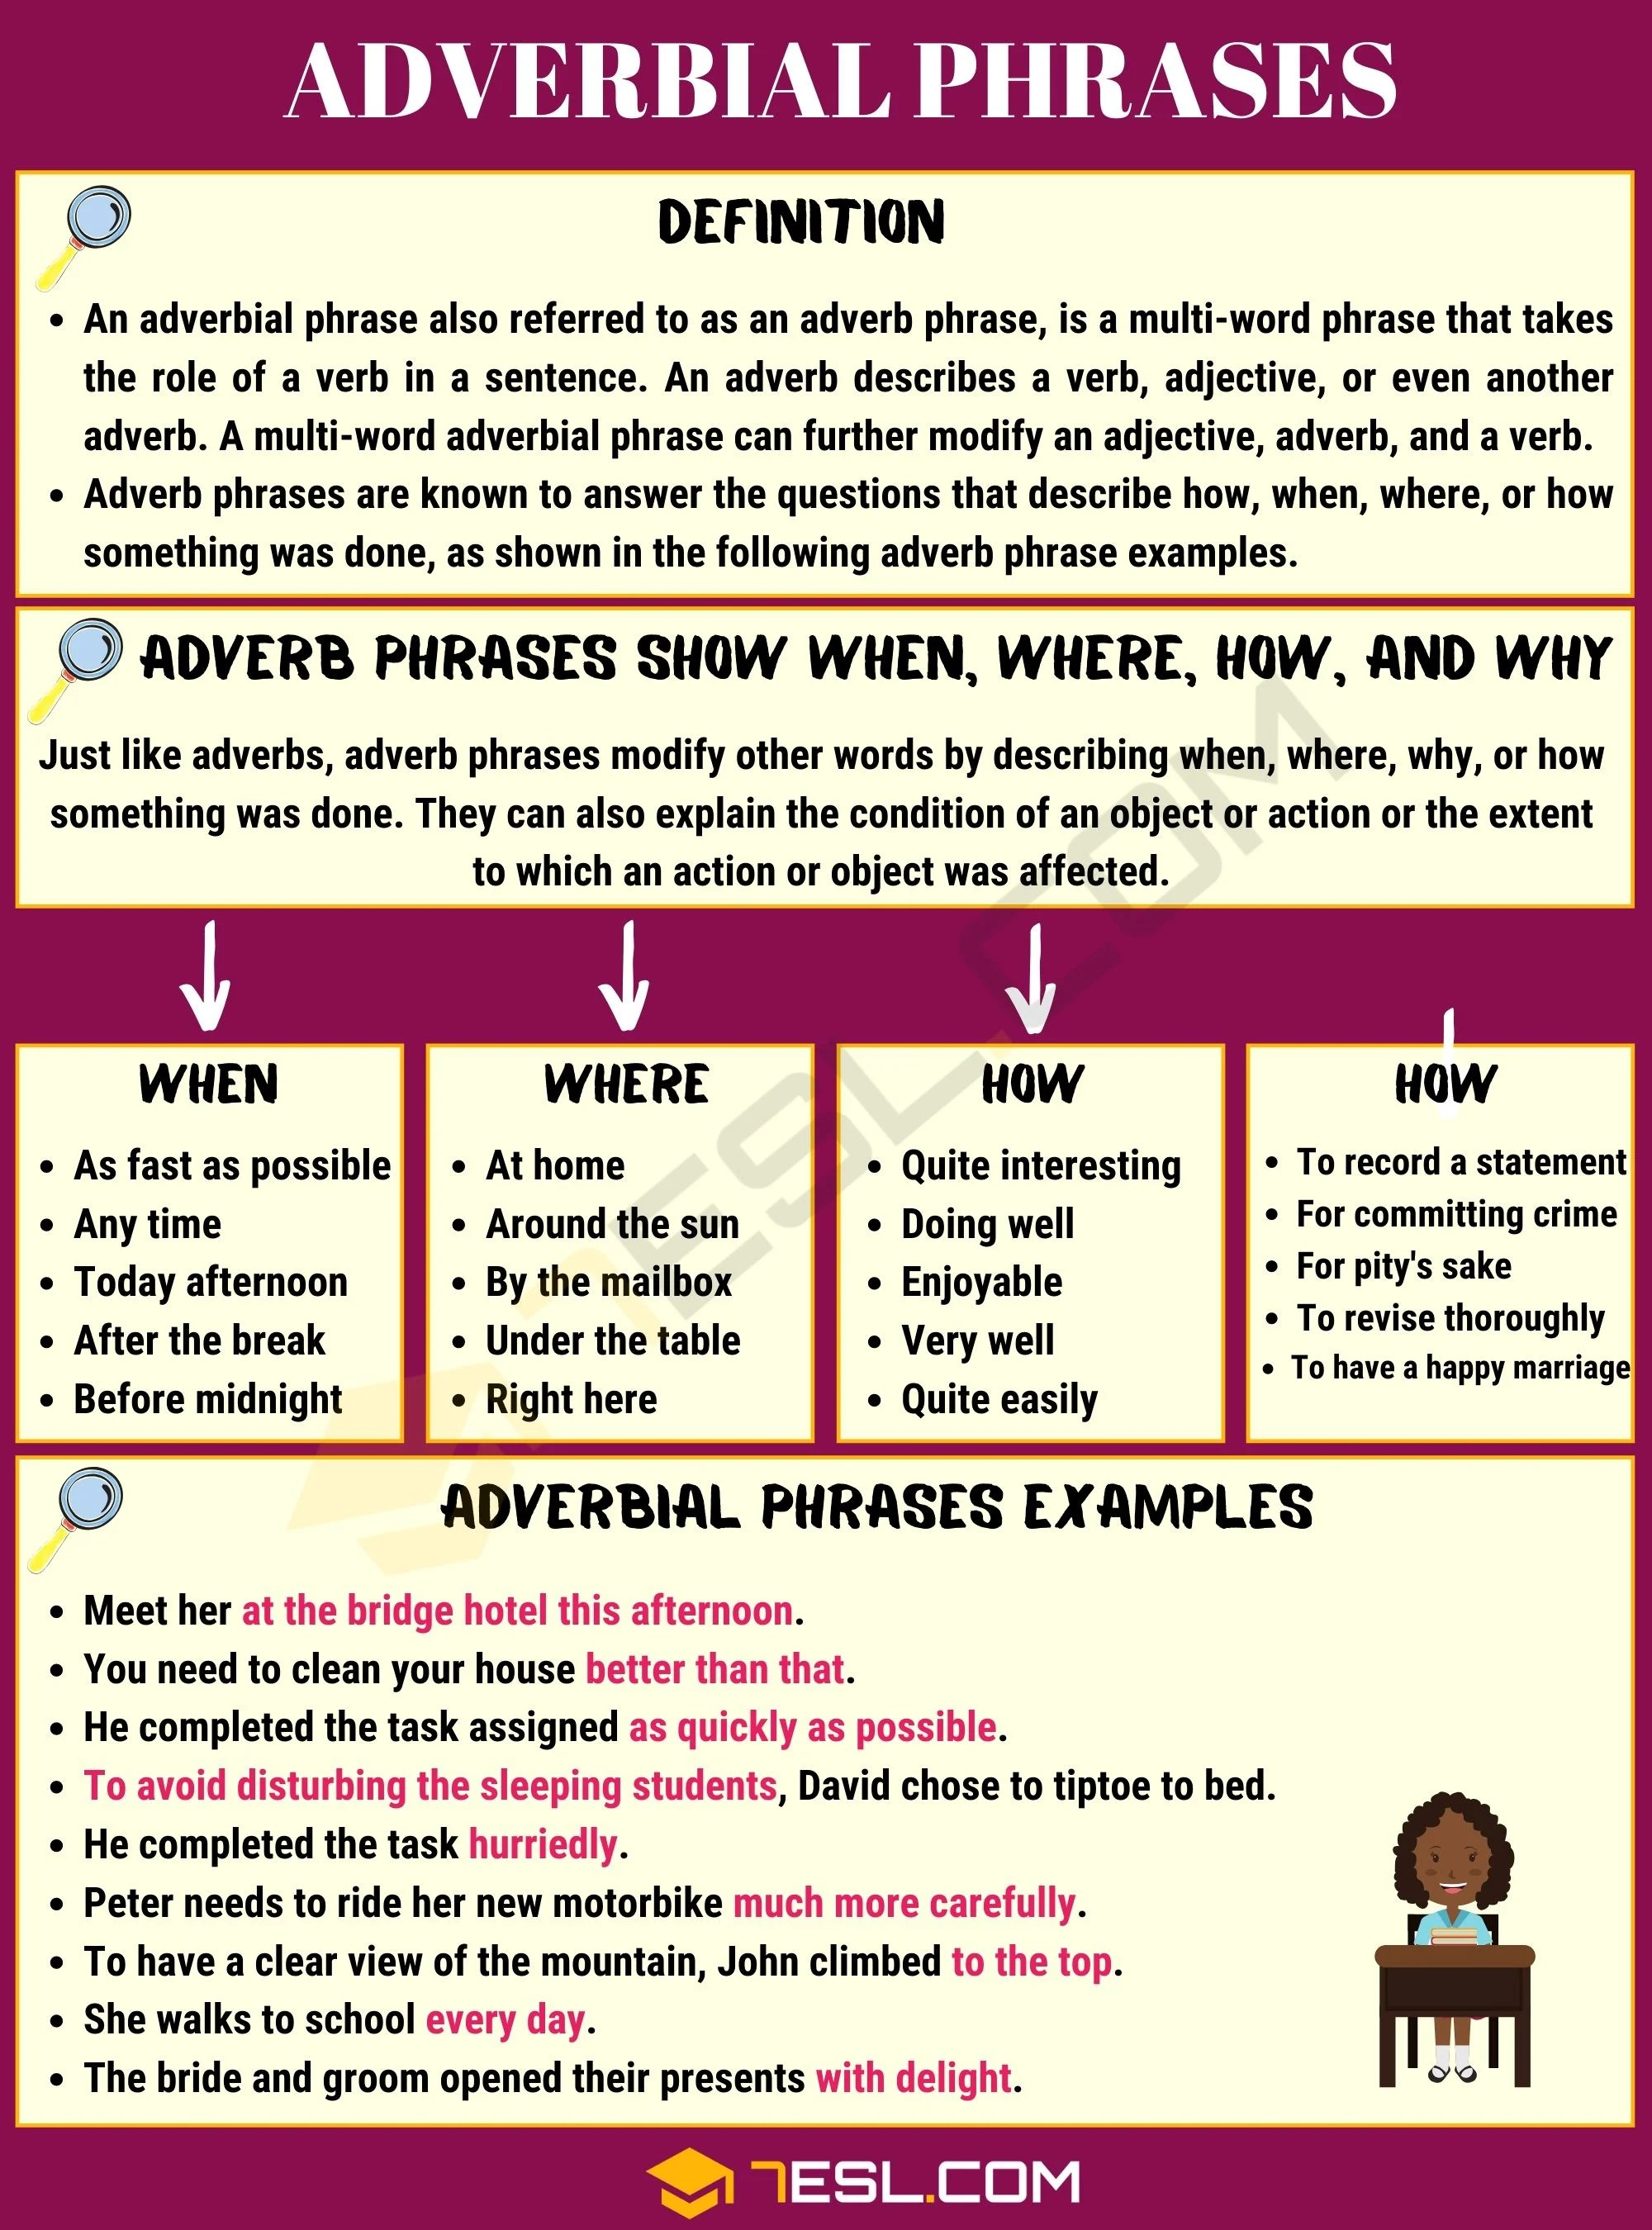 Adverbial Phrase Adverb Phrase Definition Usage And